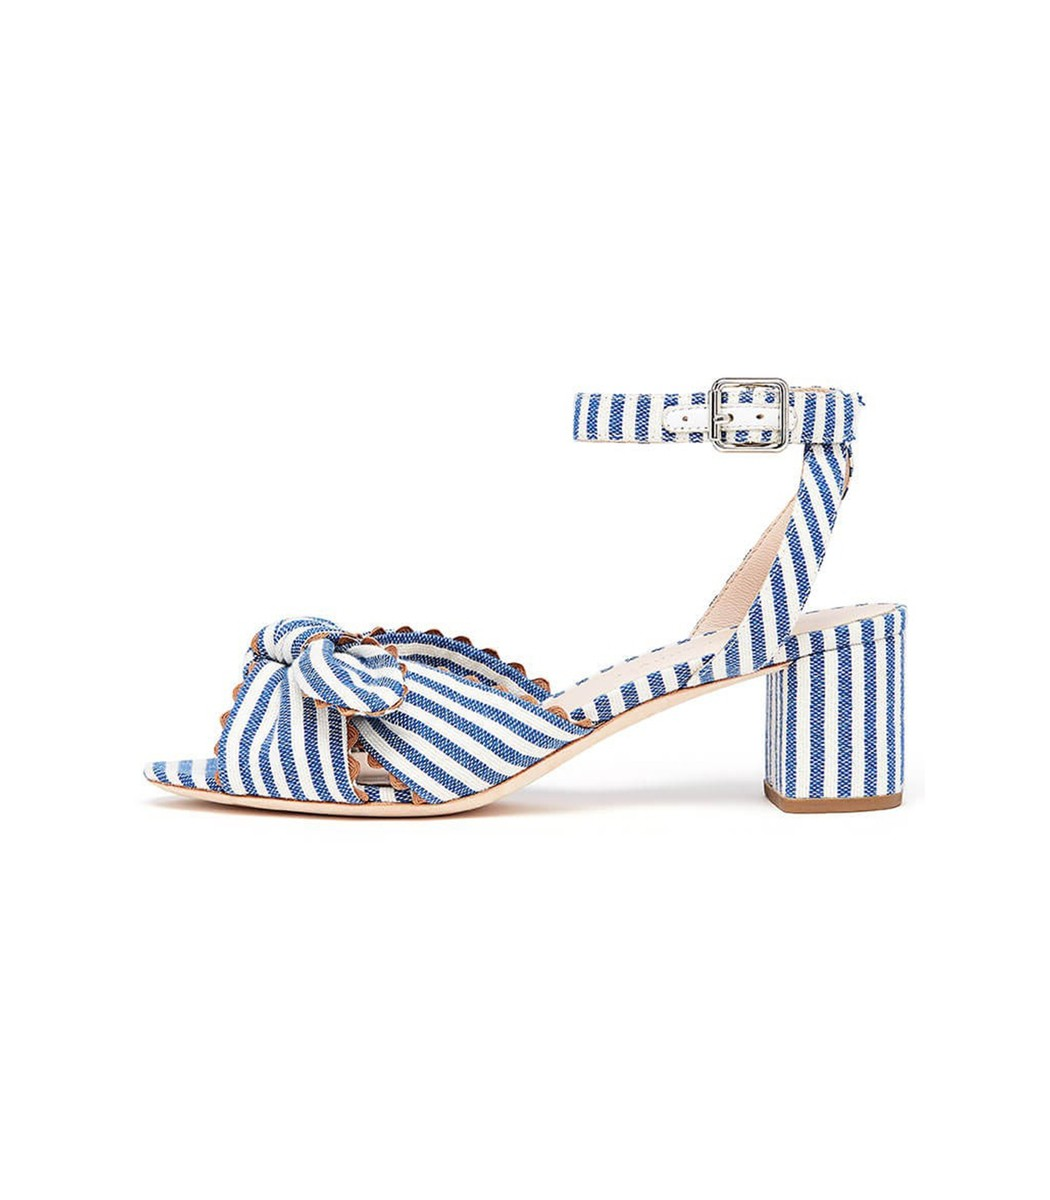 1c1cb0286459 Loeffler Randall Jill Knotted Block Heel With Ankle Strap In Blue Cream